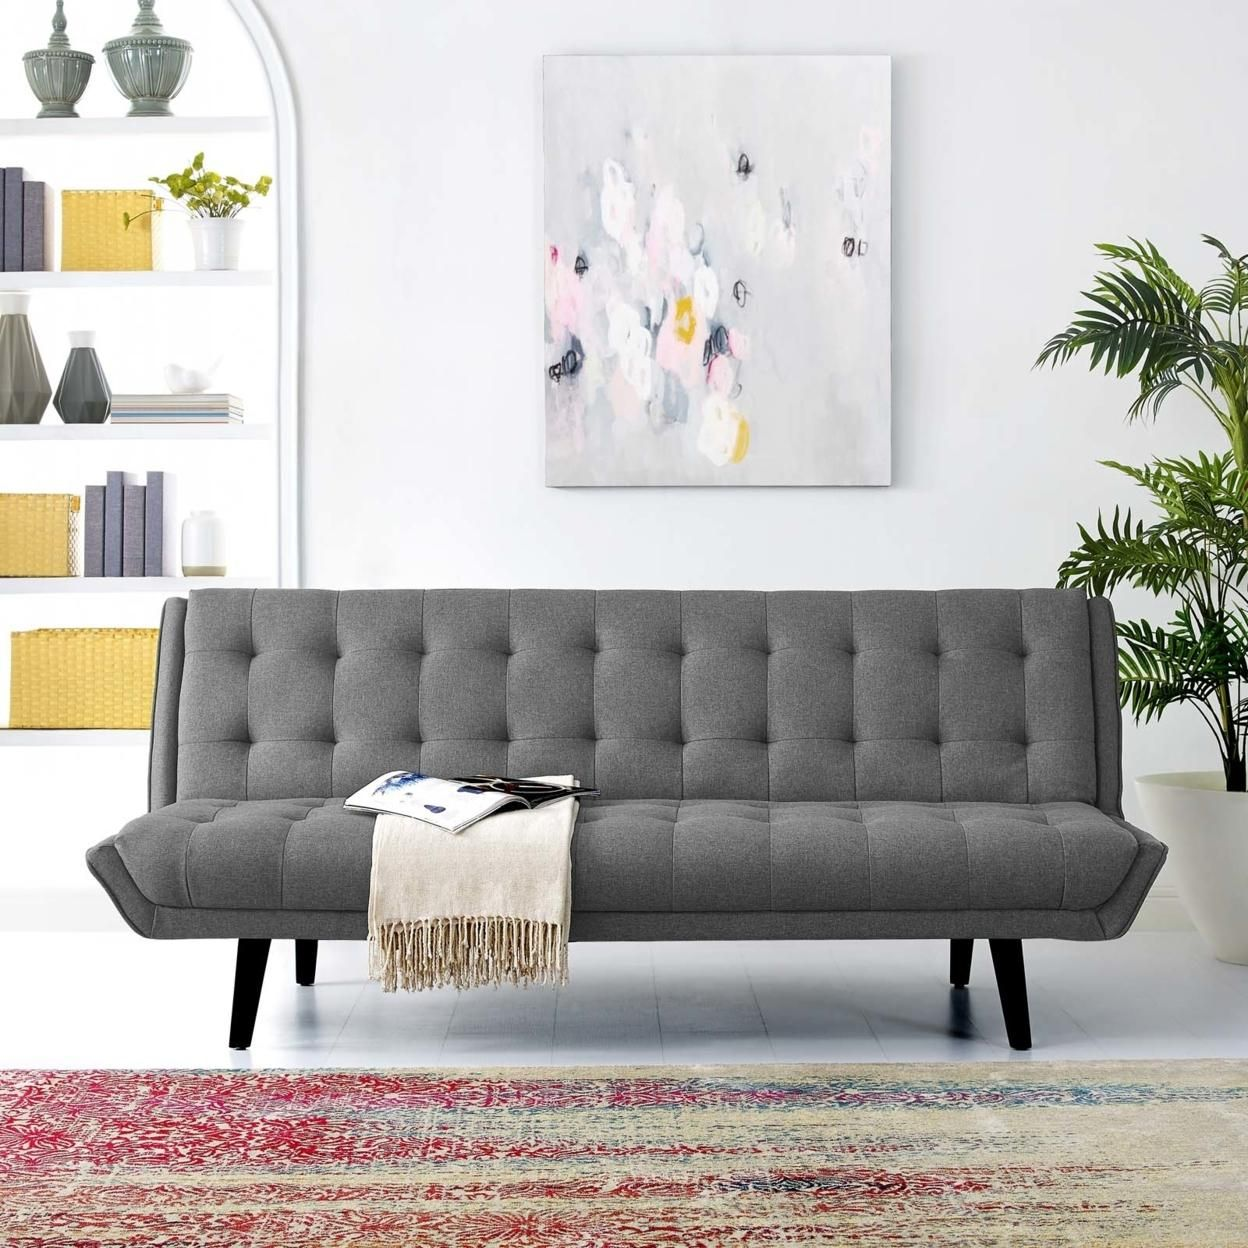 Glance Tufted Convertible Fabric Sofa Bed (3093-GRY)